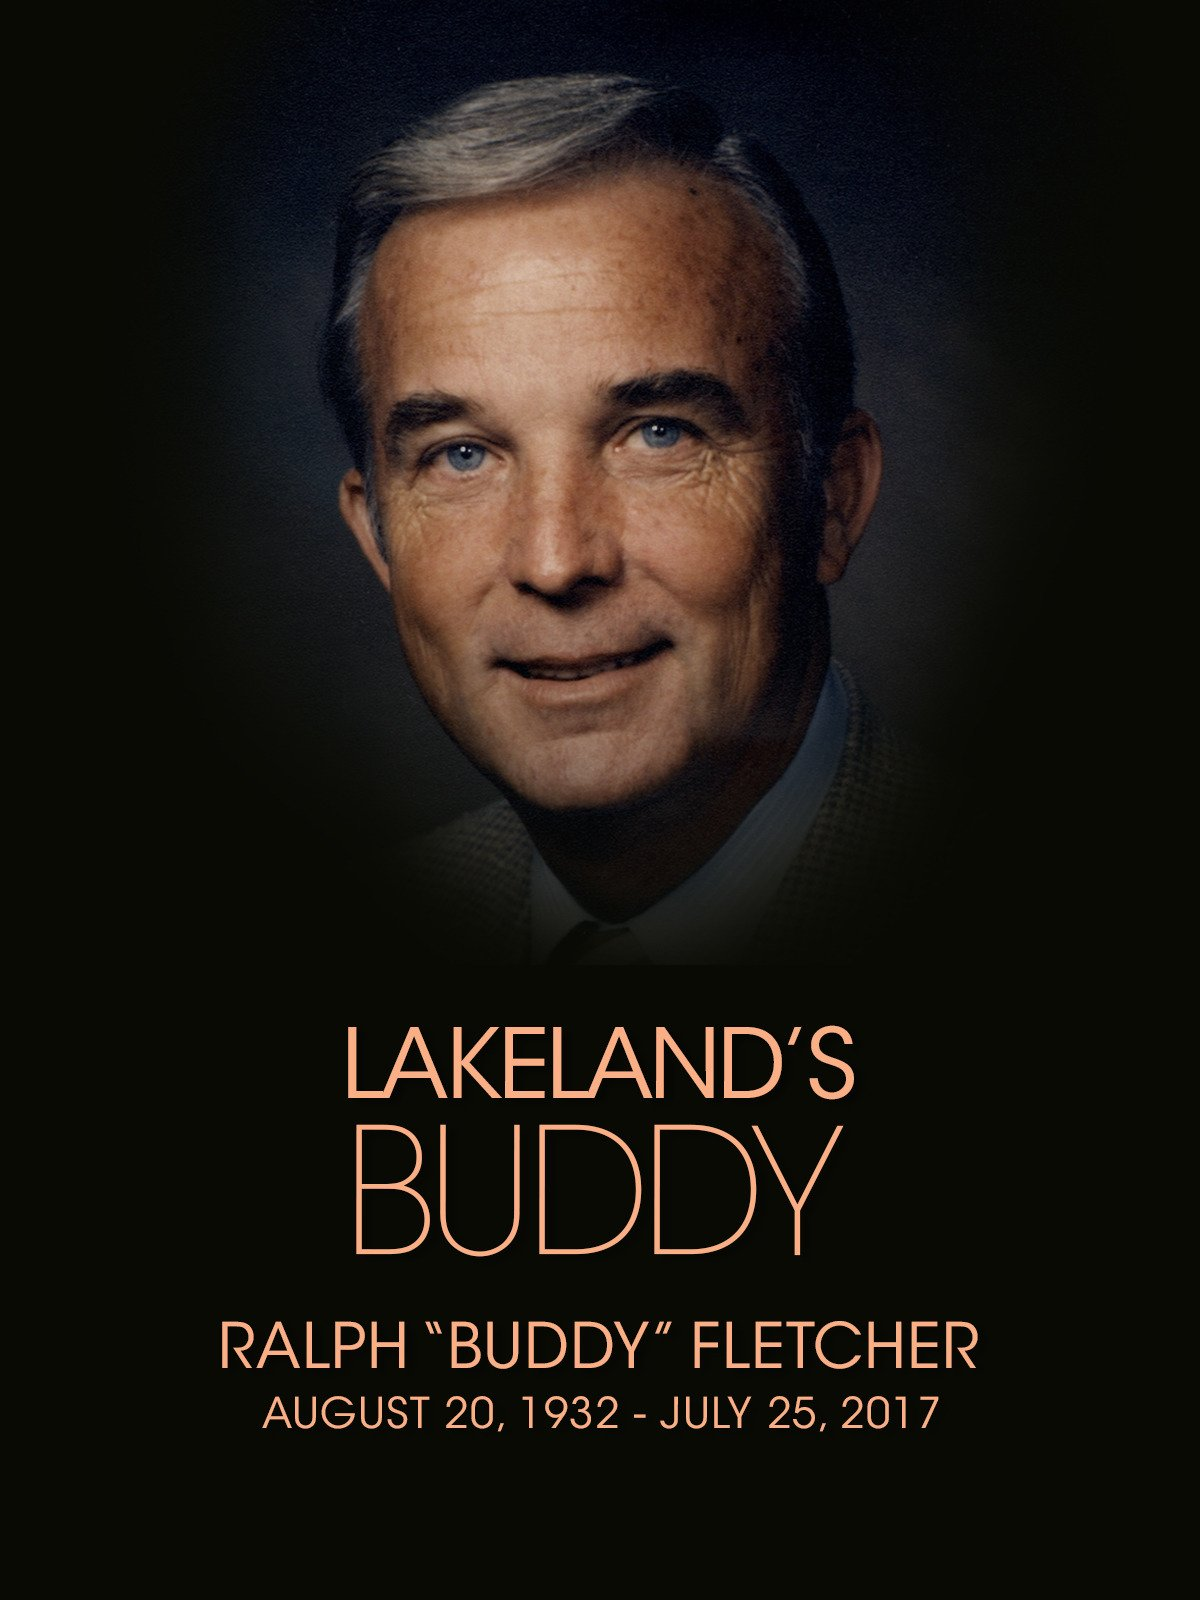 Lakeland's Buddy